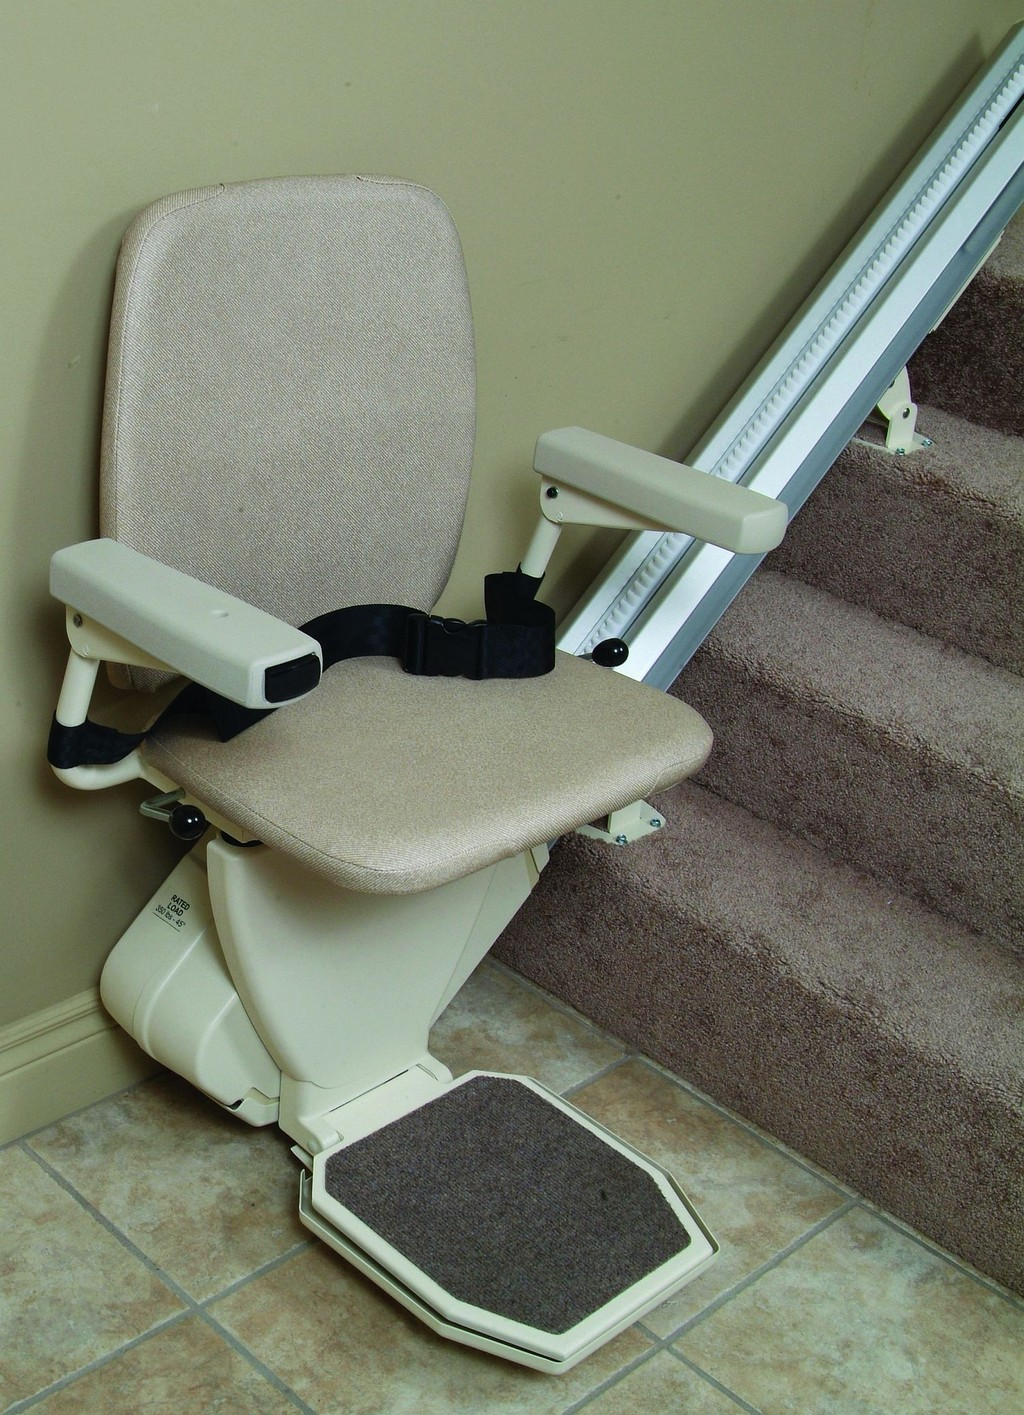 concord stairlift instructions, wheel chair stair lift, acorn stairlifts reviews, buy stairlift